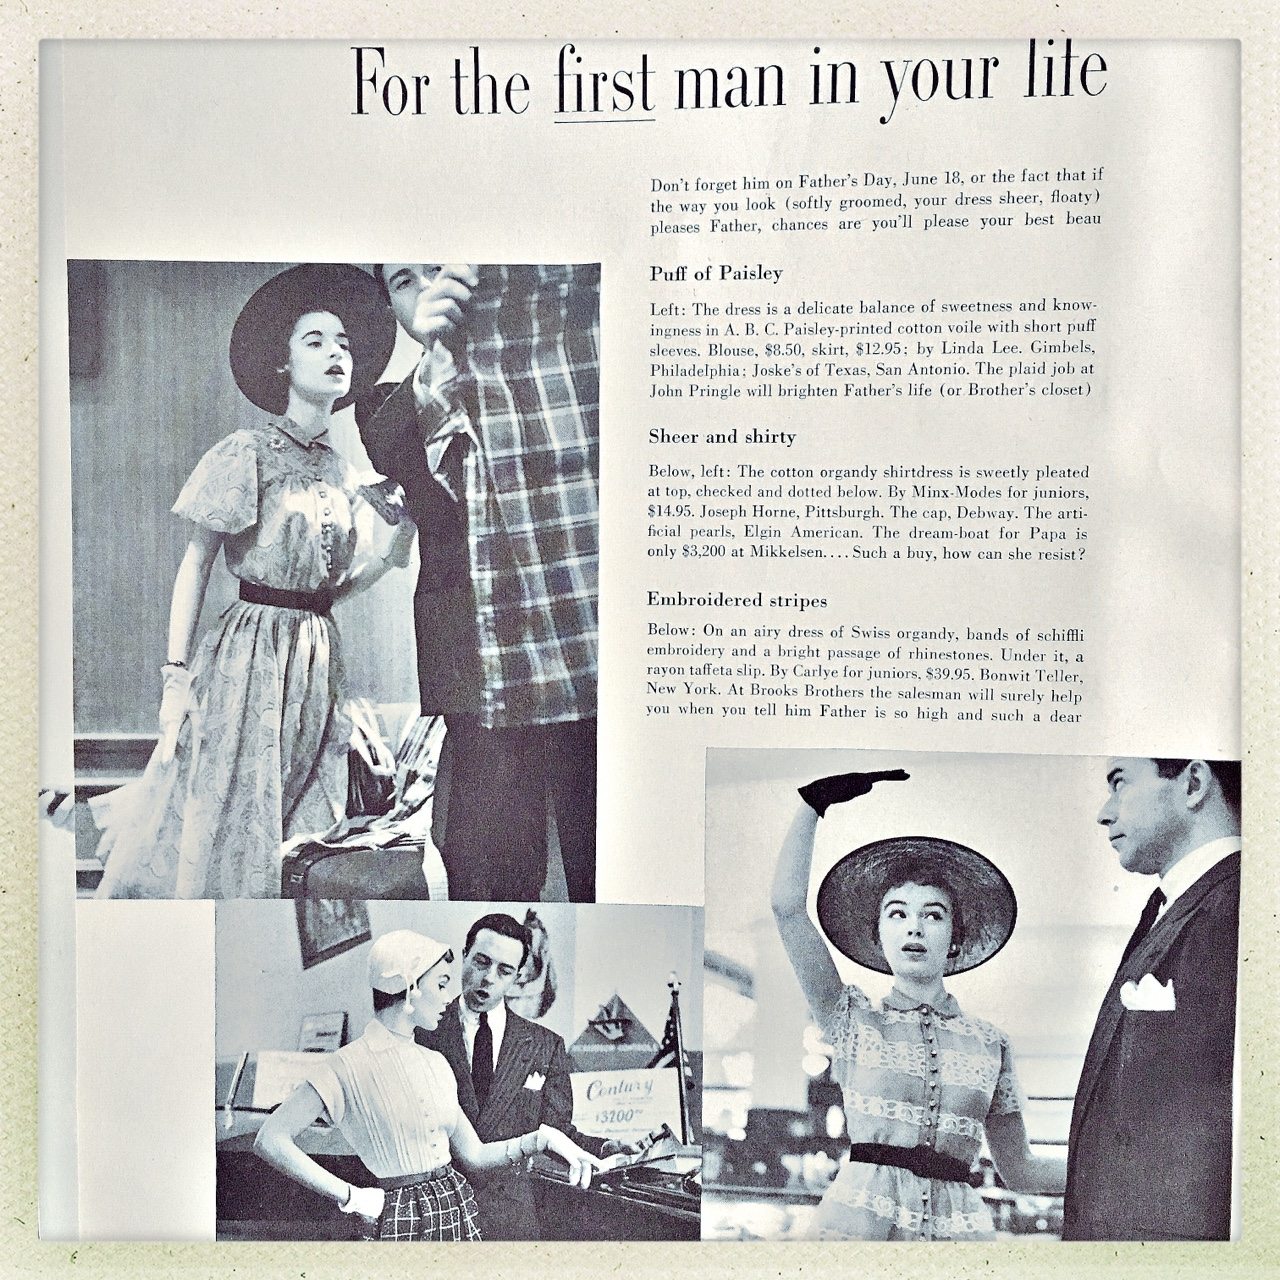 For The First Man In Your Life.   Don't forget him on Father's Day, June 18, or the fact that if the way you look (softly groomed, your dress sheer, floaty) pleases Father, chances are you'll please your best beau.   Mademoiselle. June 1950.